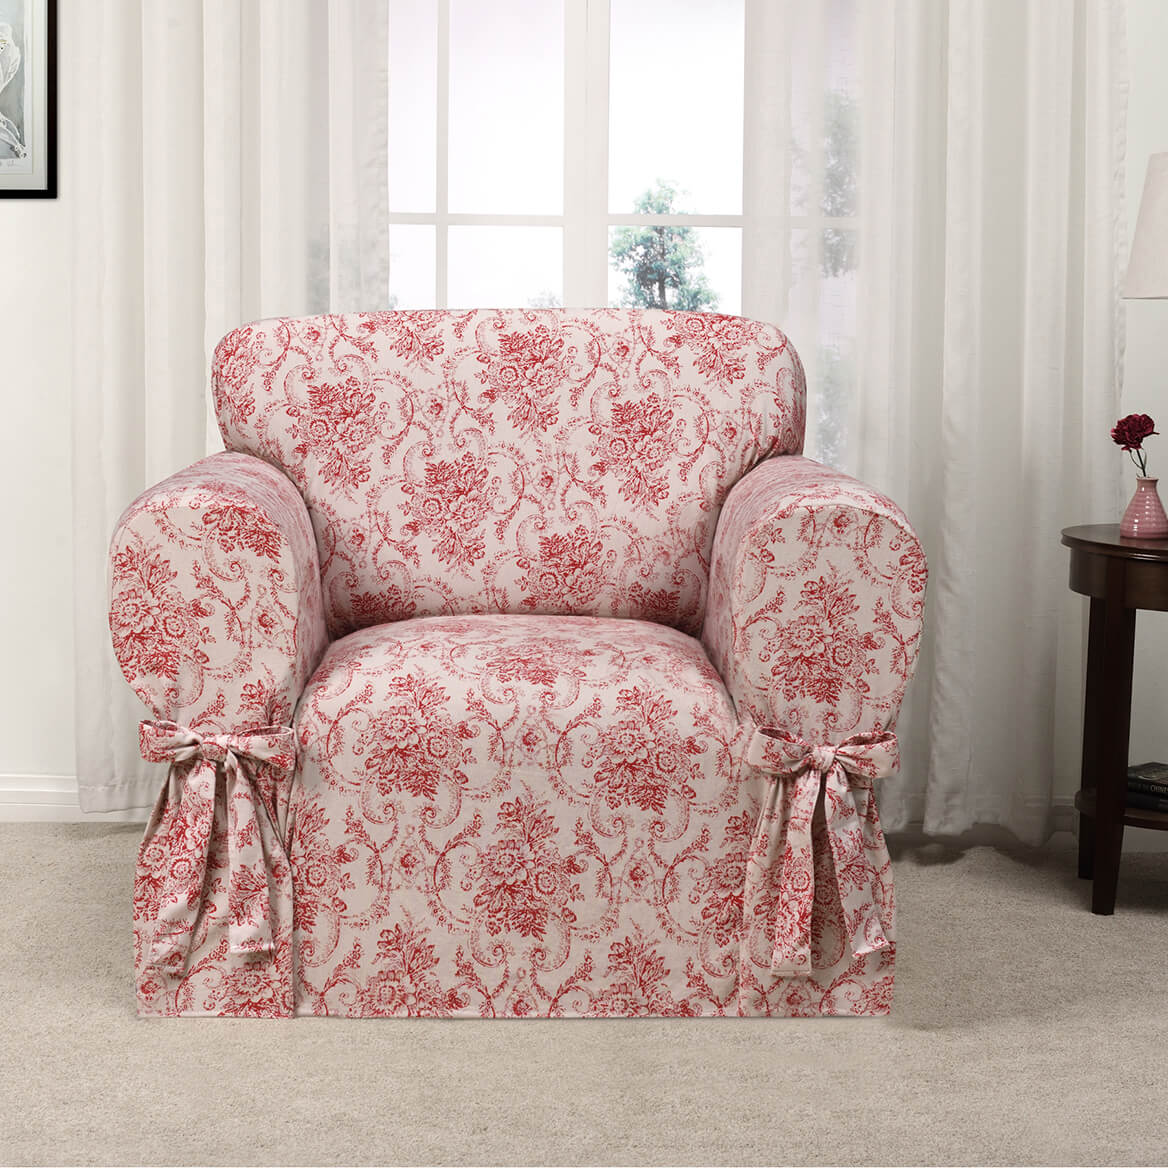 chair covers ireland chairscape contact details kathy chateau slipcover recliner cover